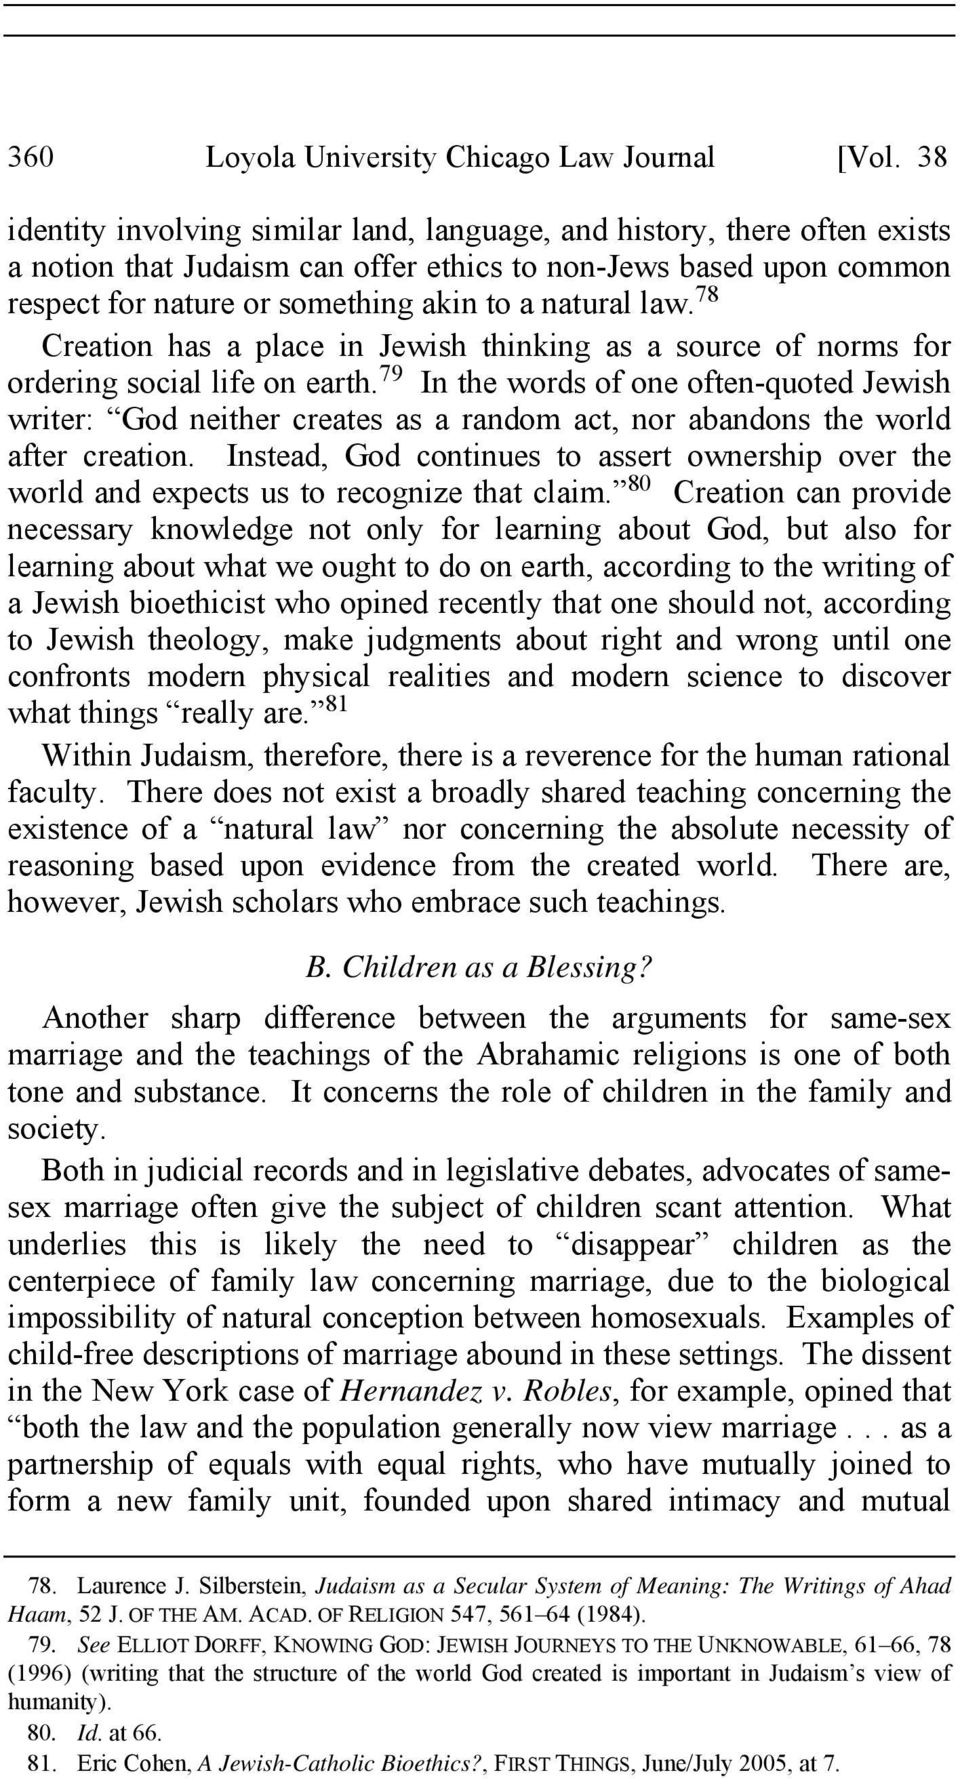 law. 78 Creation has a place in Jewish thinking as a source of norms for ordering social life on earth.